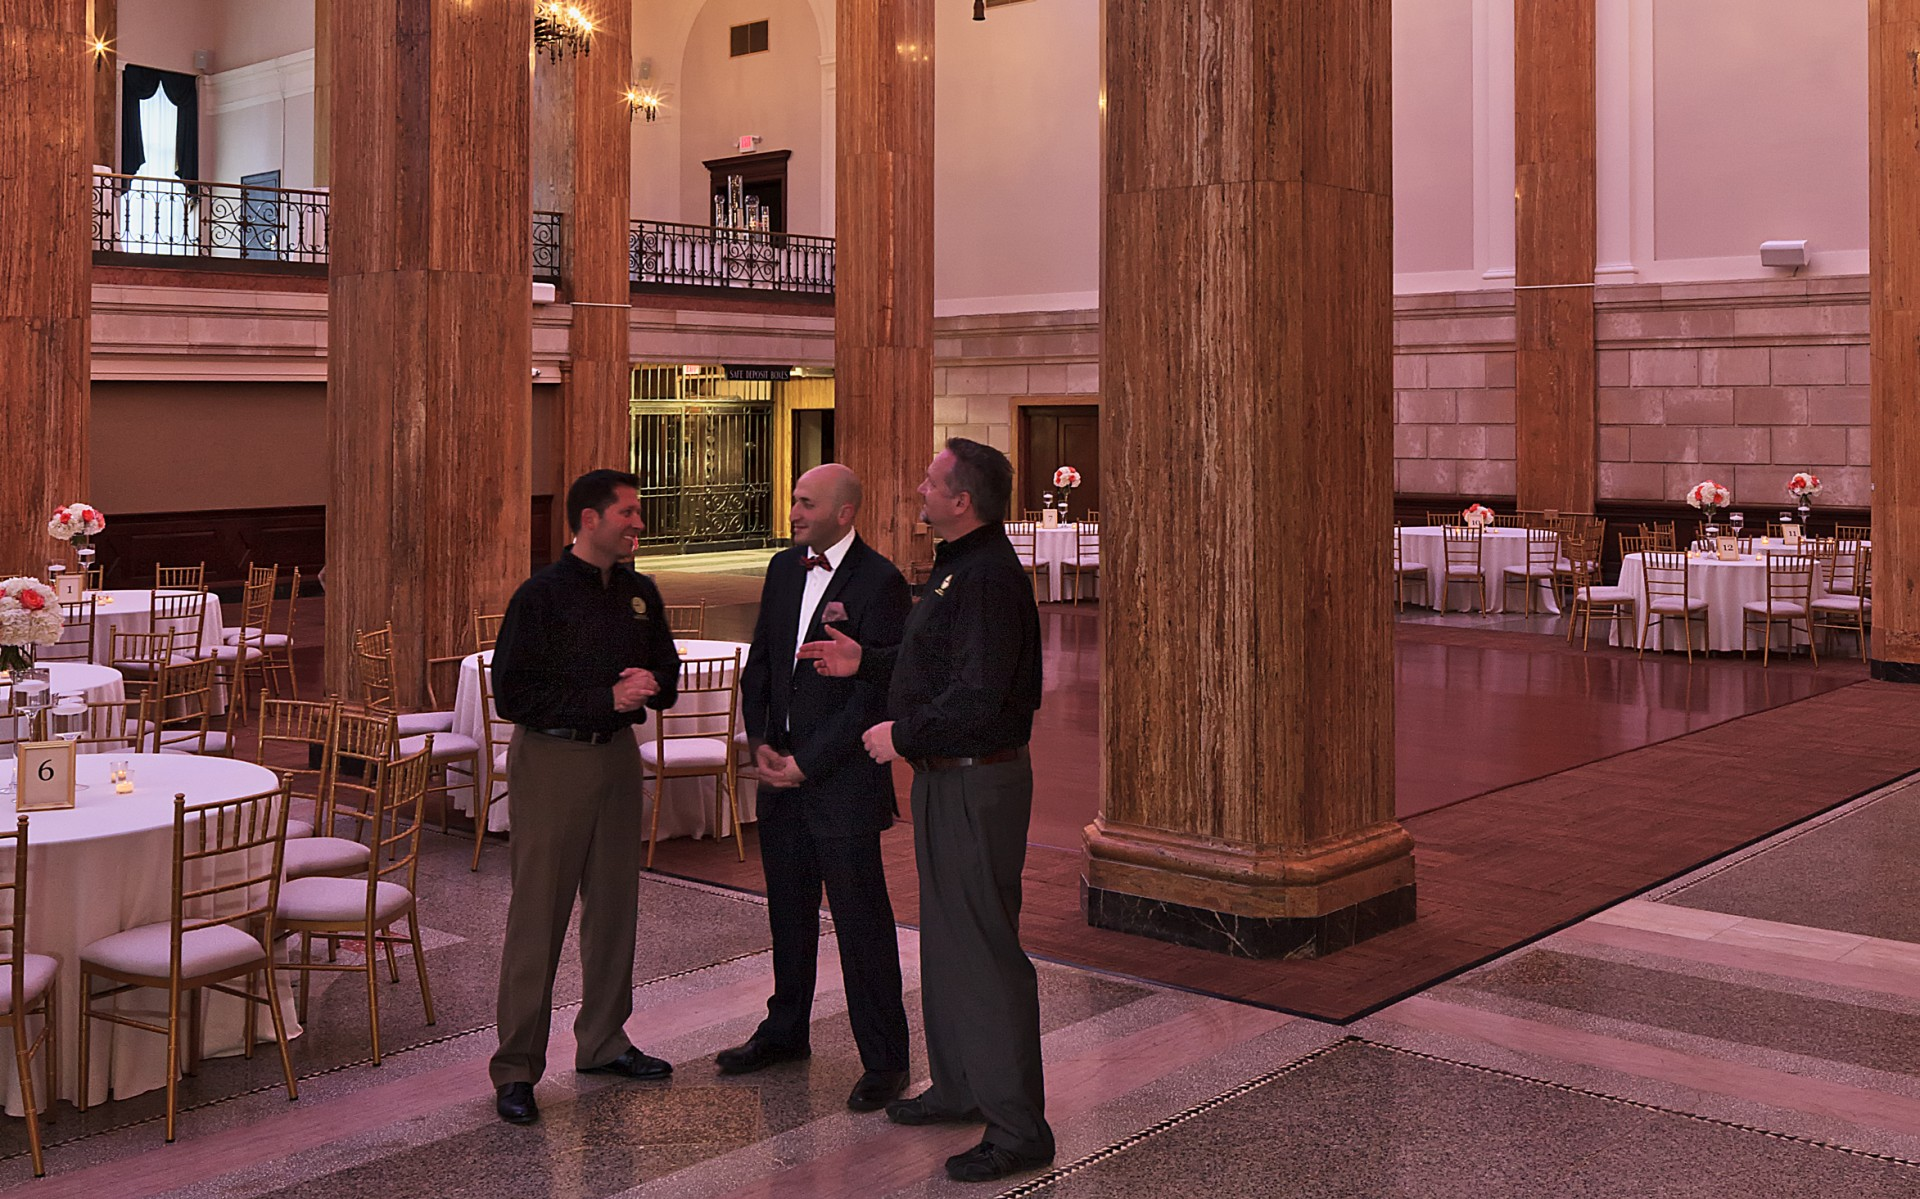 Designers American Energy Care (AEC) used Lumentalk technology to modernize the lighting system in a 112-year old building.